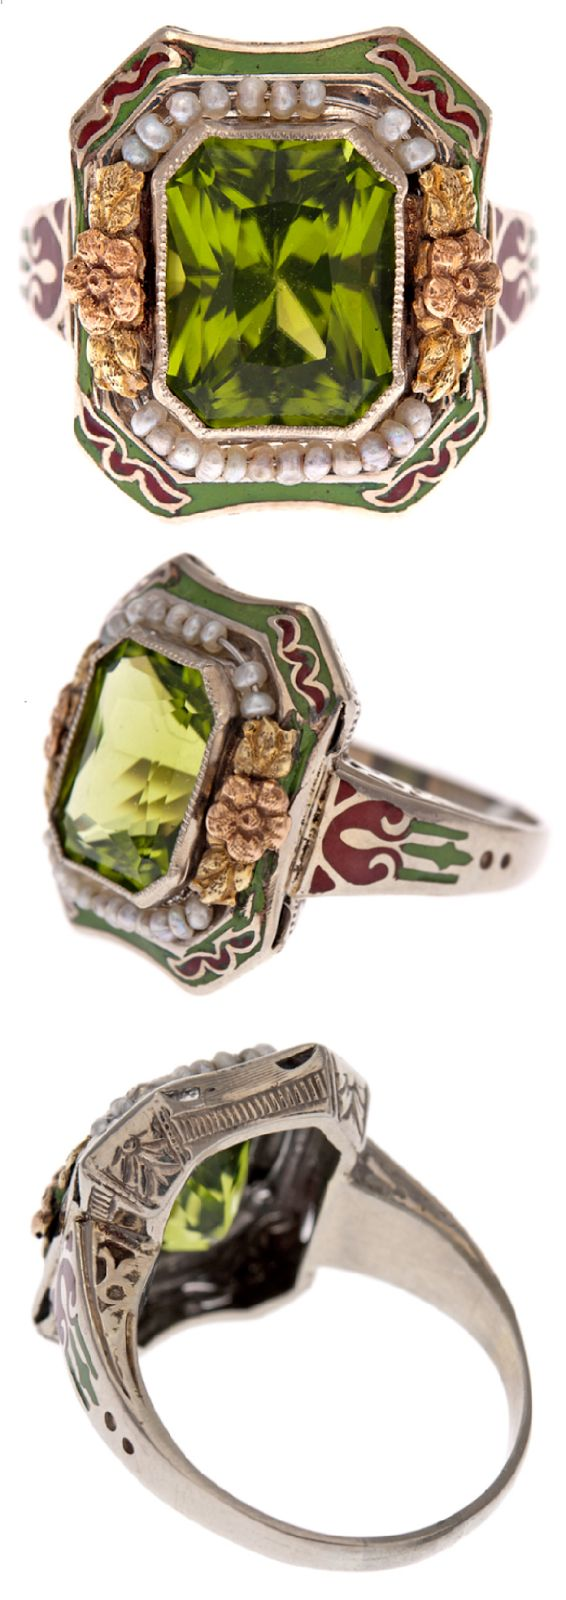 Antique peridot, enamel, and pearl ring, circa 1900. This peridot ring with enamel and natural pearls was made in 1900. This peridot ring with enamel and natural pearls was made in 1900. This ring centers an intense, dazzling peridot surrounded by a crown of rose gold flowers and natural seed pearls. The border is surrounded by an additional layer of rusty brown and grassy green enamel. Via Diamonds in the Library.